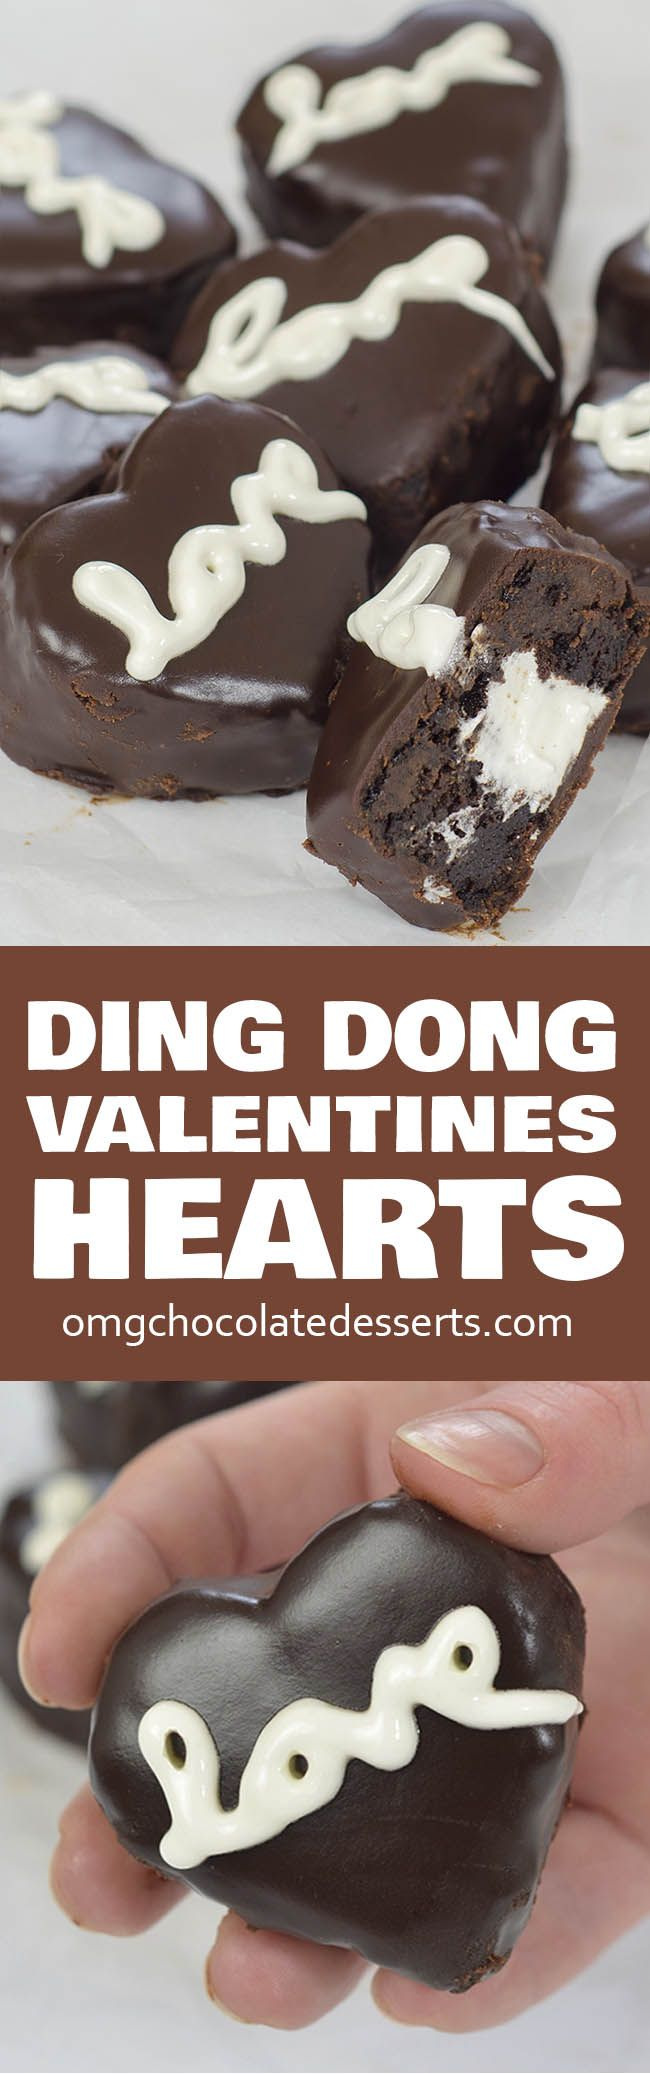 Valentines Chocolate Hearts is perfect dessert idea for your Valentines celebration.